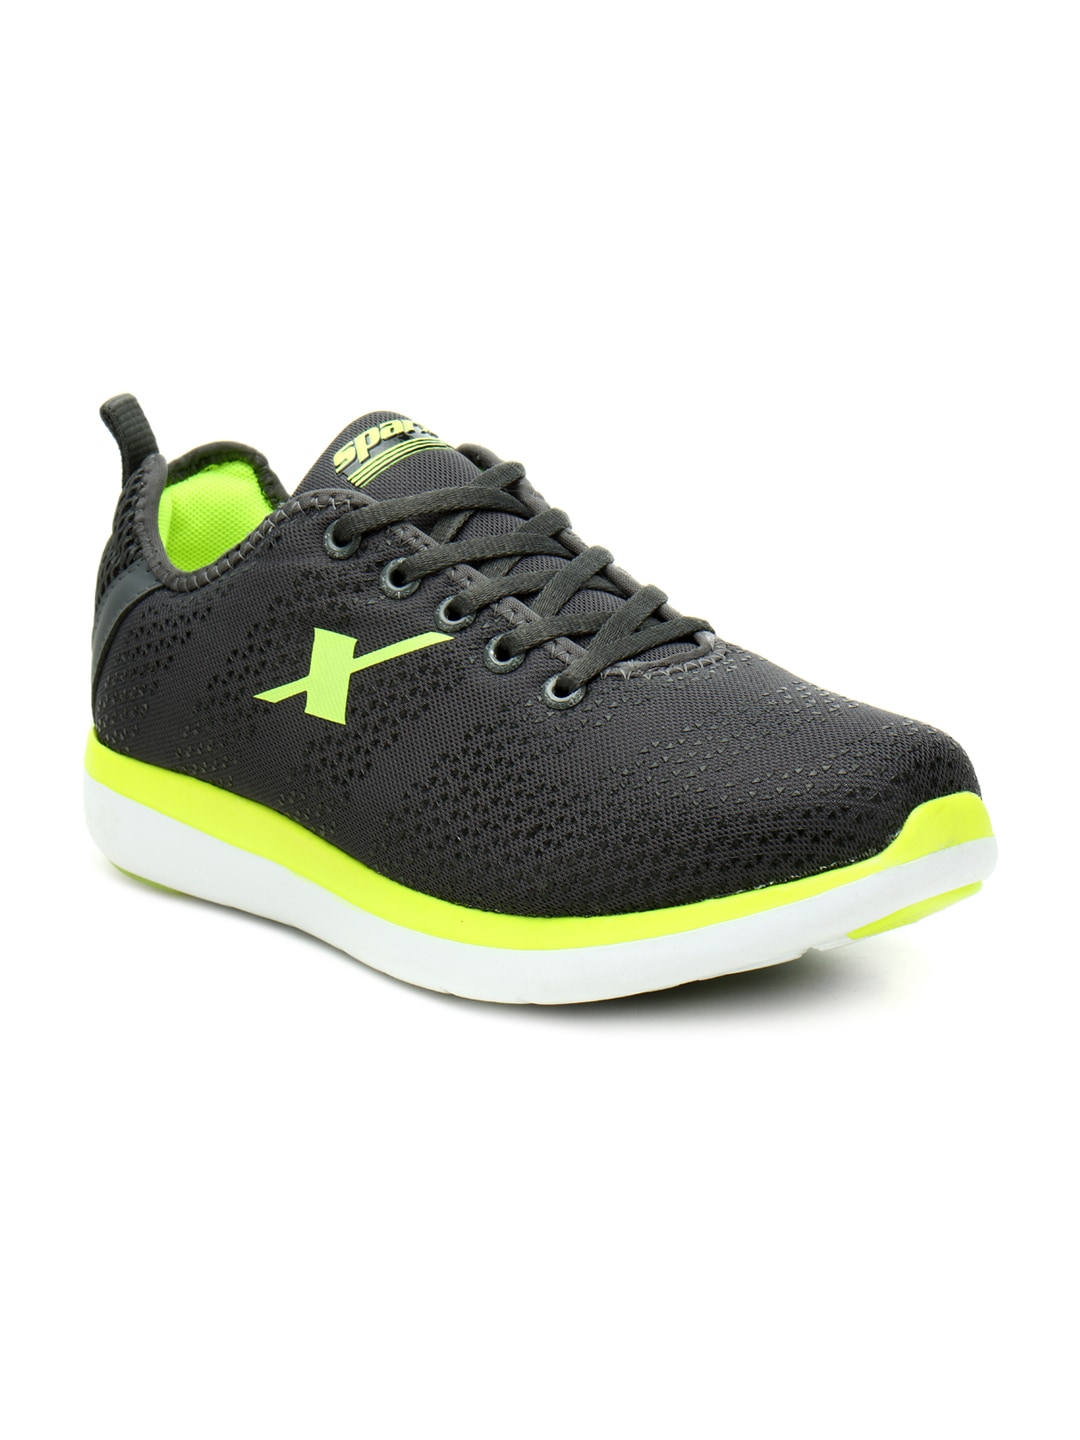 6a0e1b207 Sparx Shoes - Buy Sparx Shoes for Men Online in India